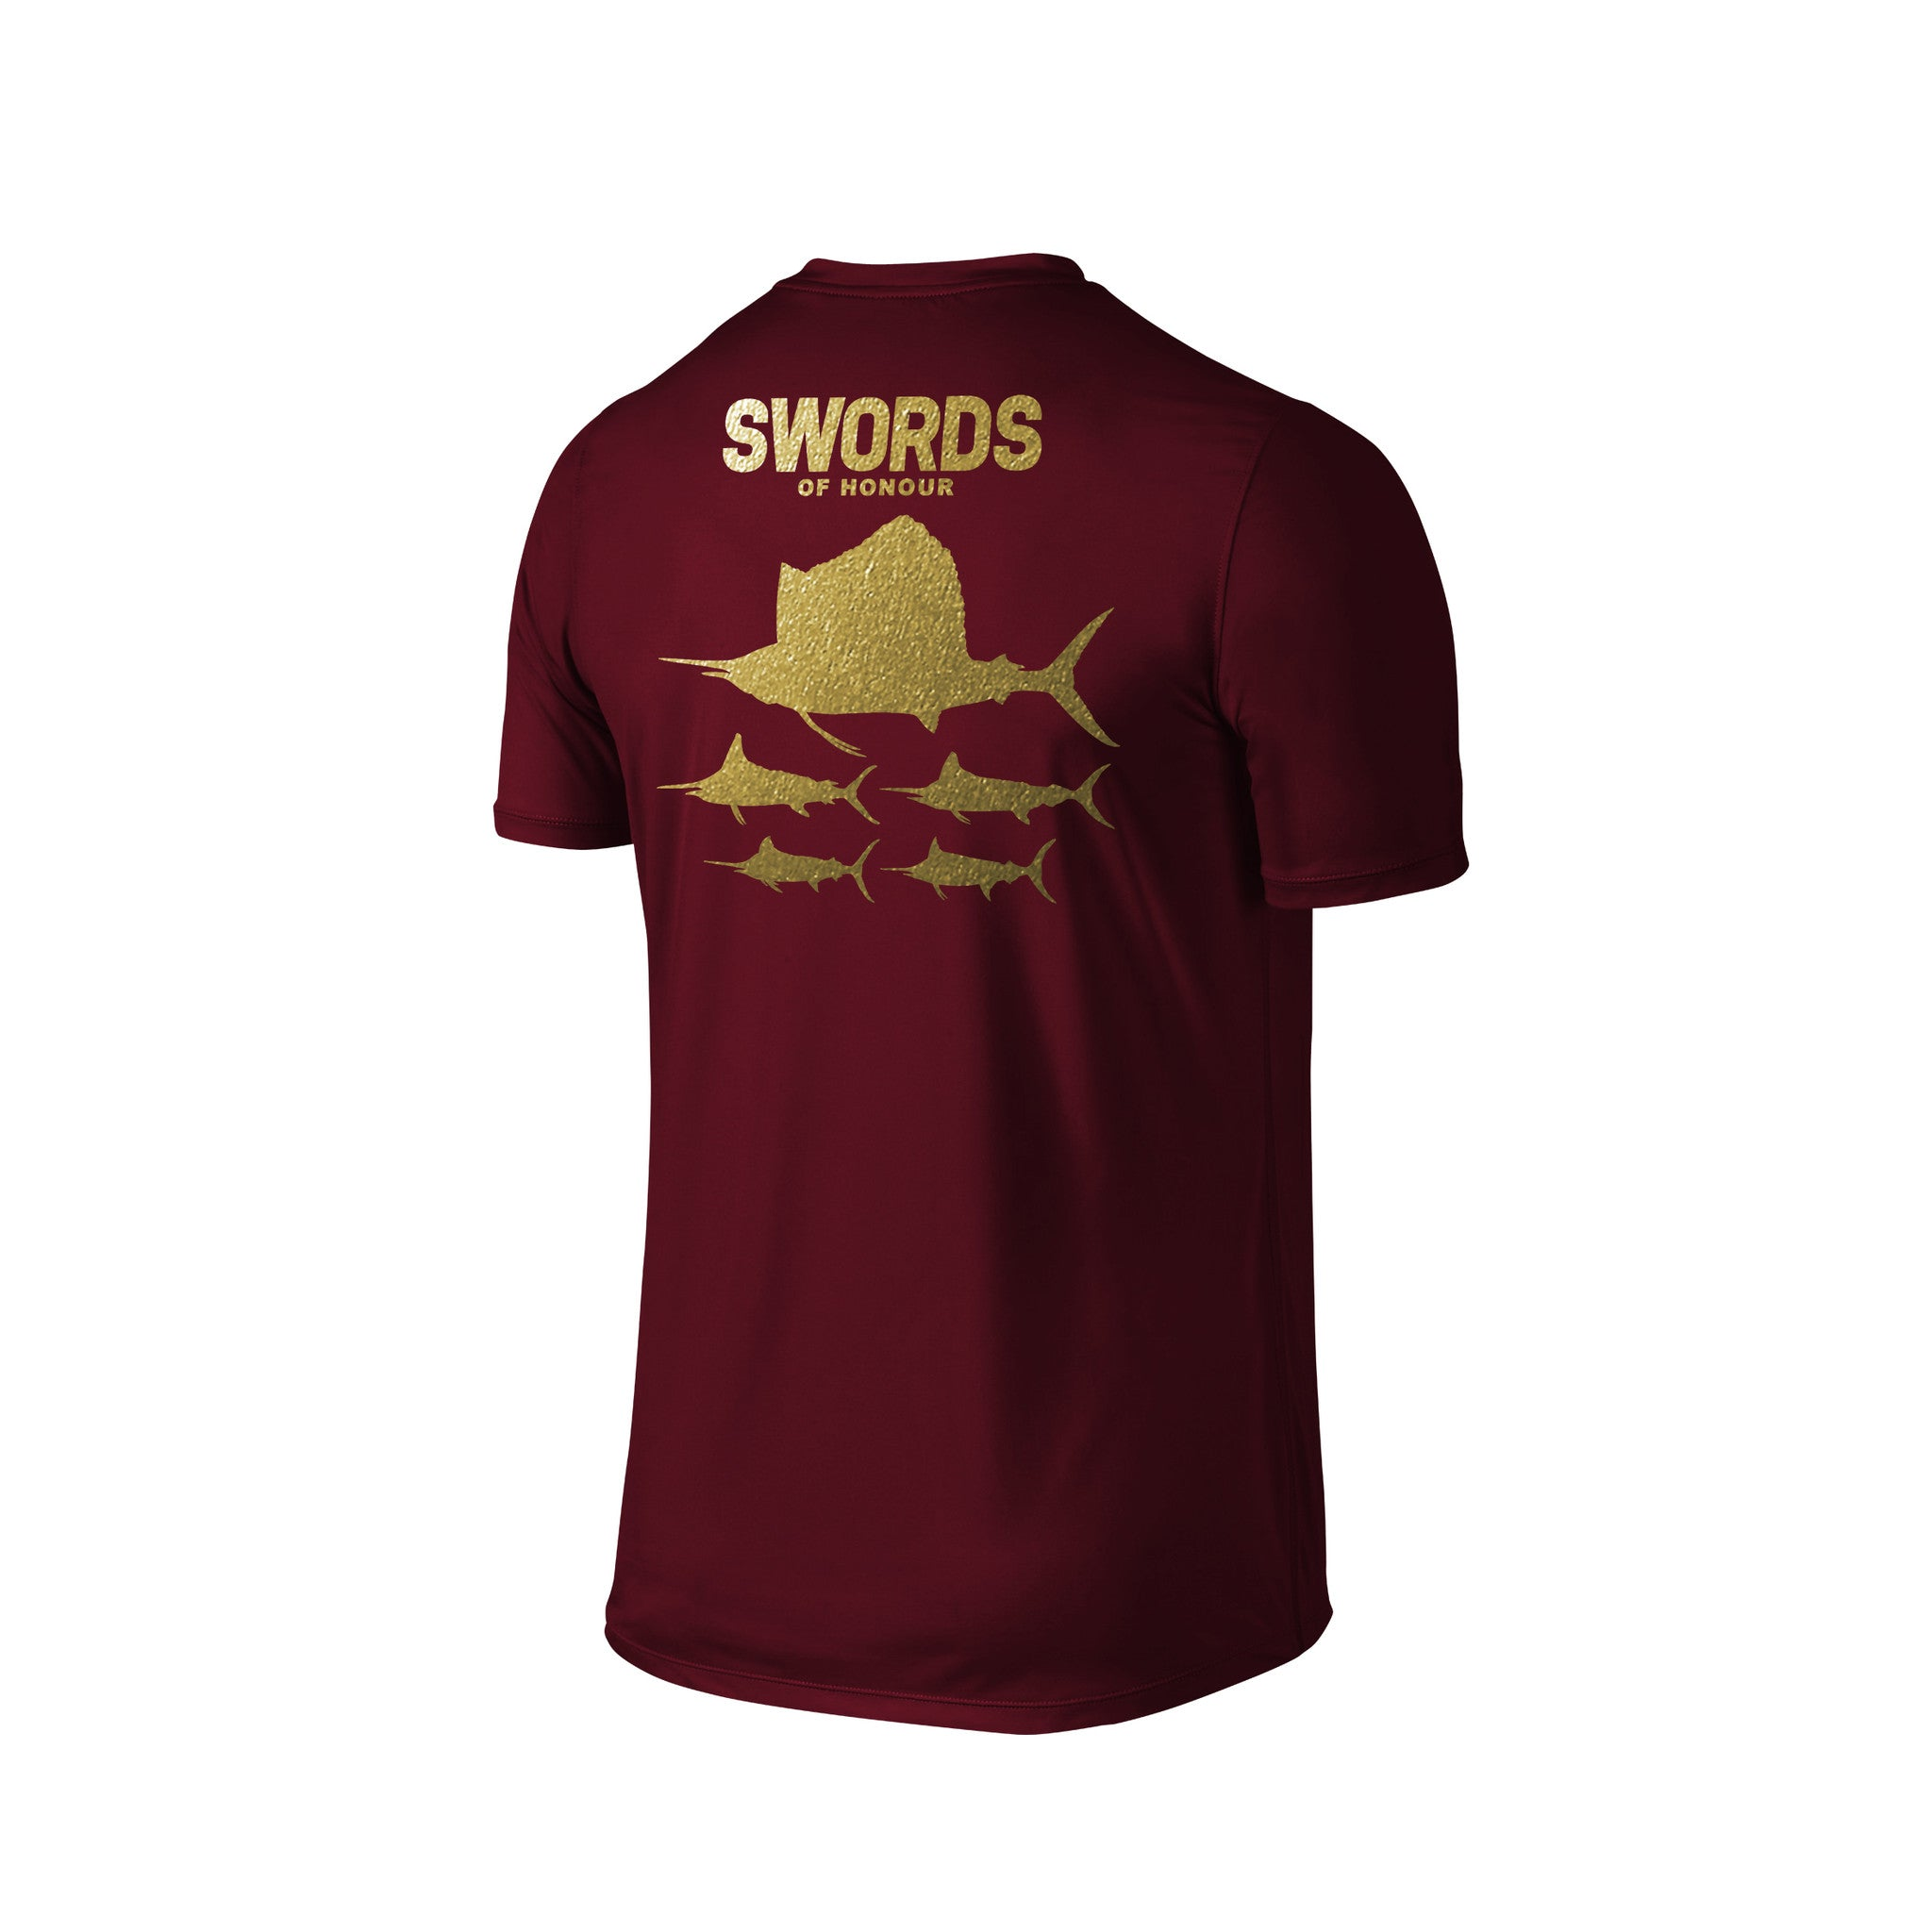 SportyFish Silhouette Series Gold Print Maroon T-shirt(back view): Swords of Honour